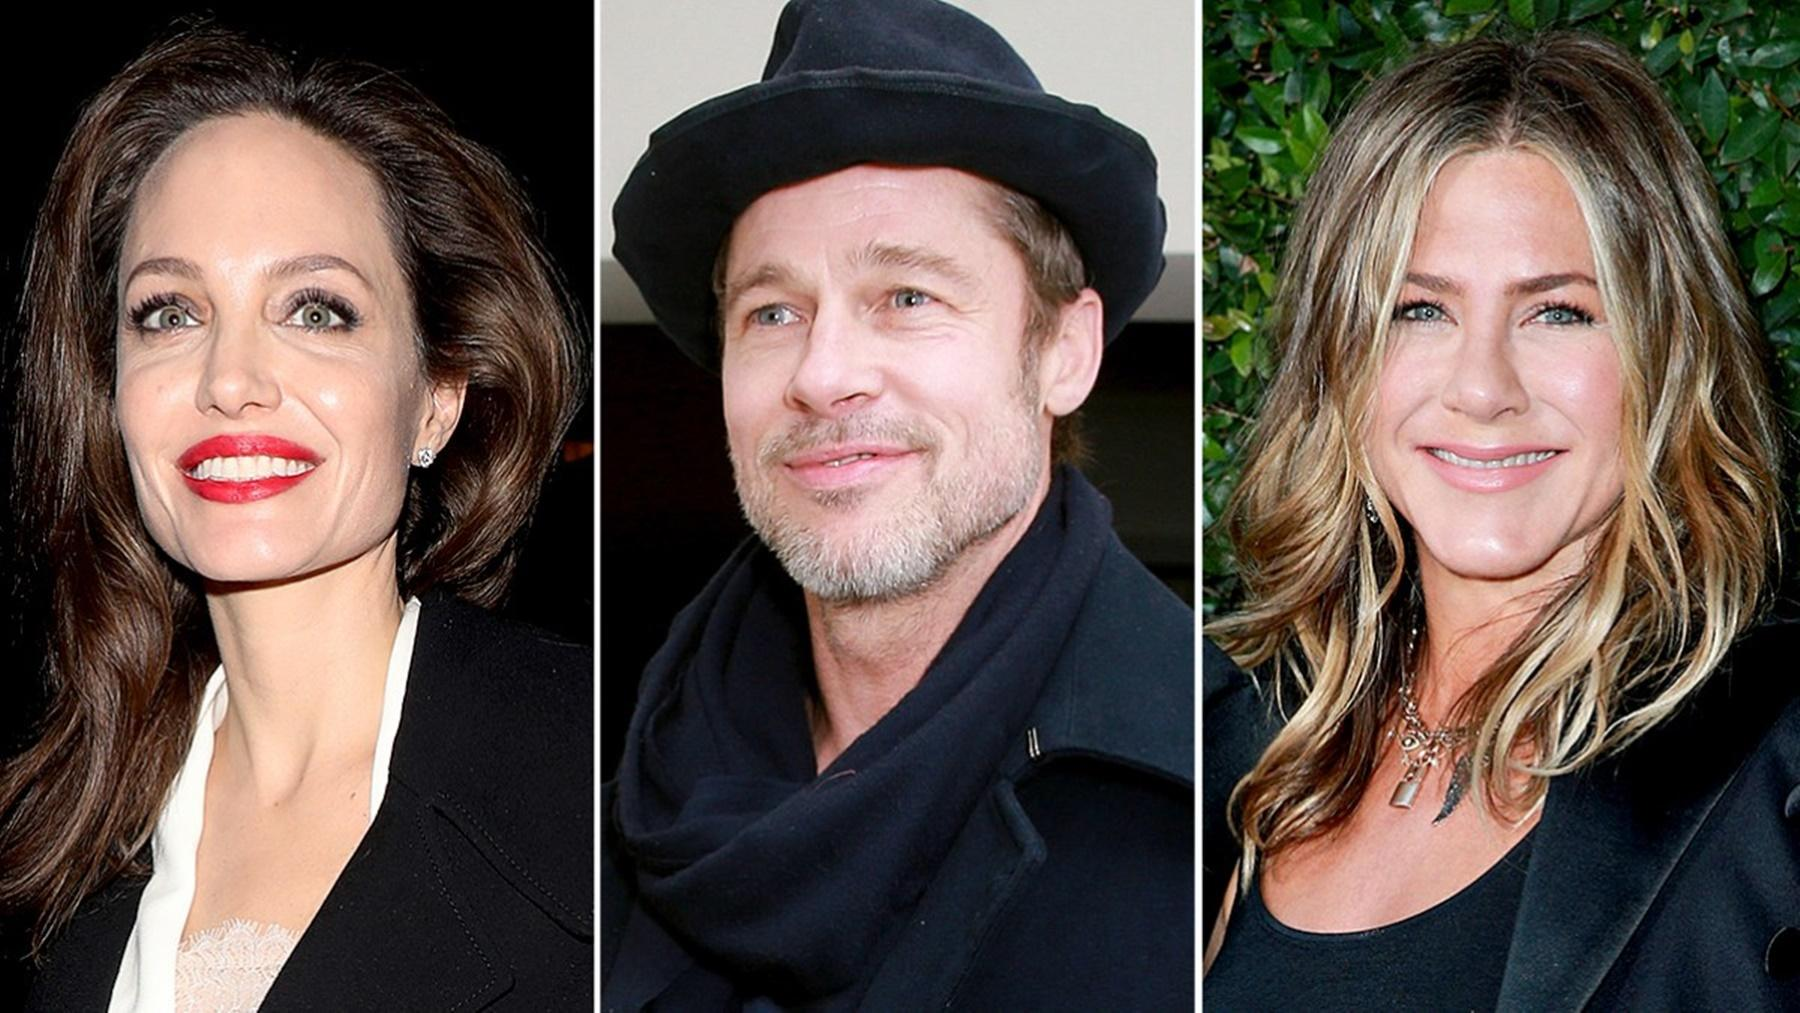 'Baffled' Angelina Jolie Cannot Understand Why Brad Pitt Attended Jennifer Aniston's 50th Birthday Party